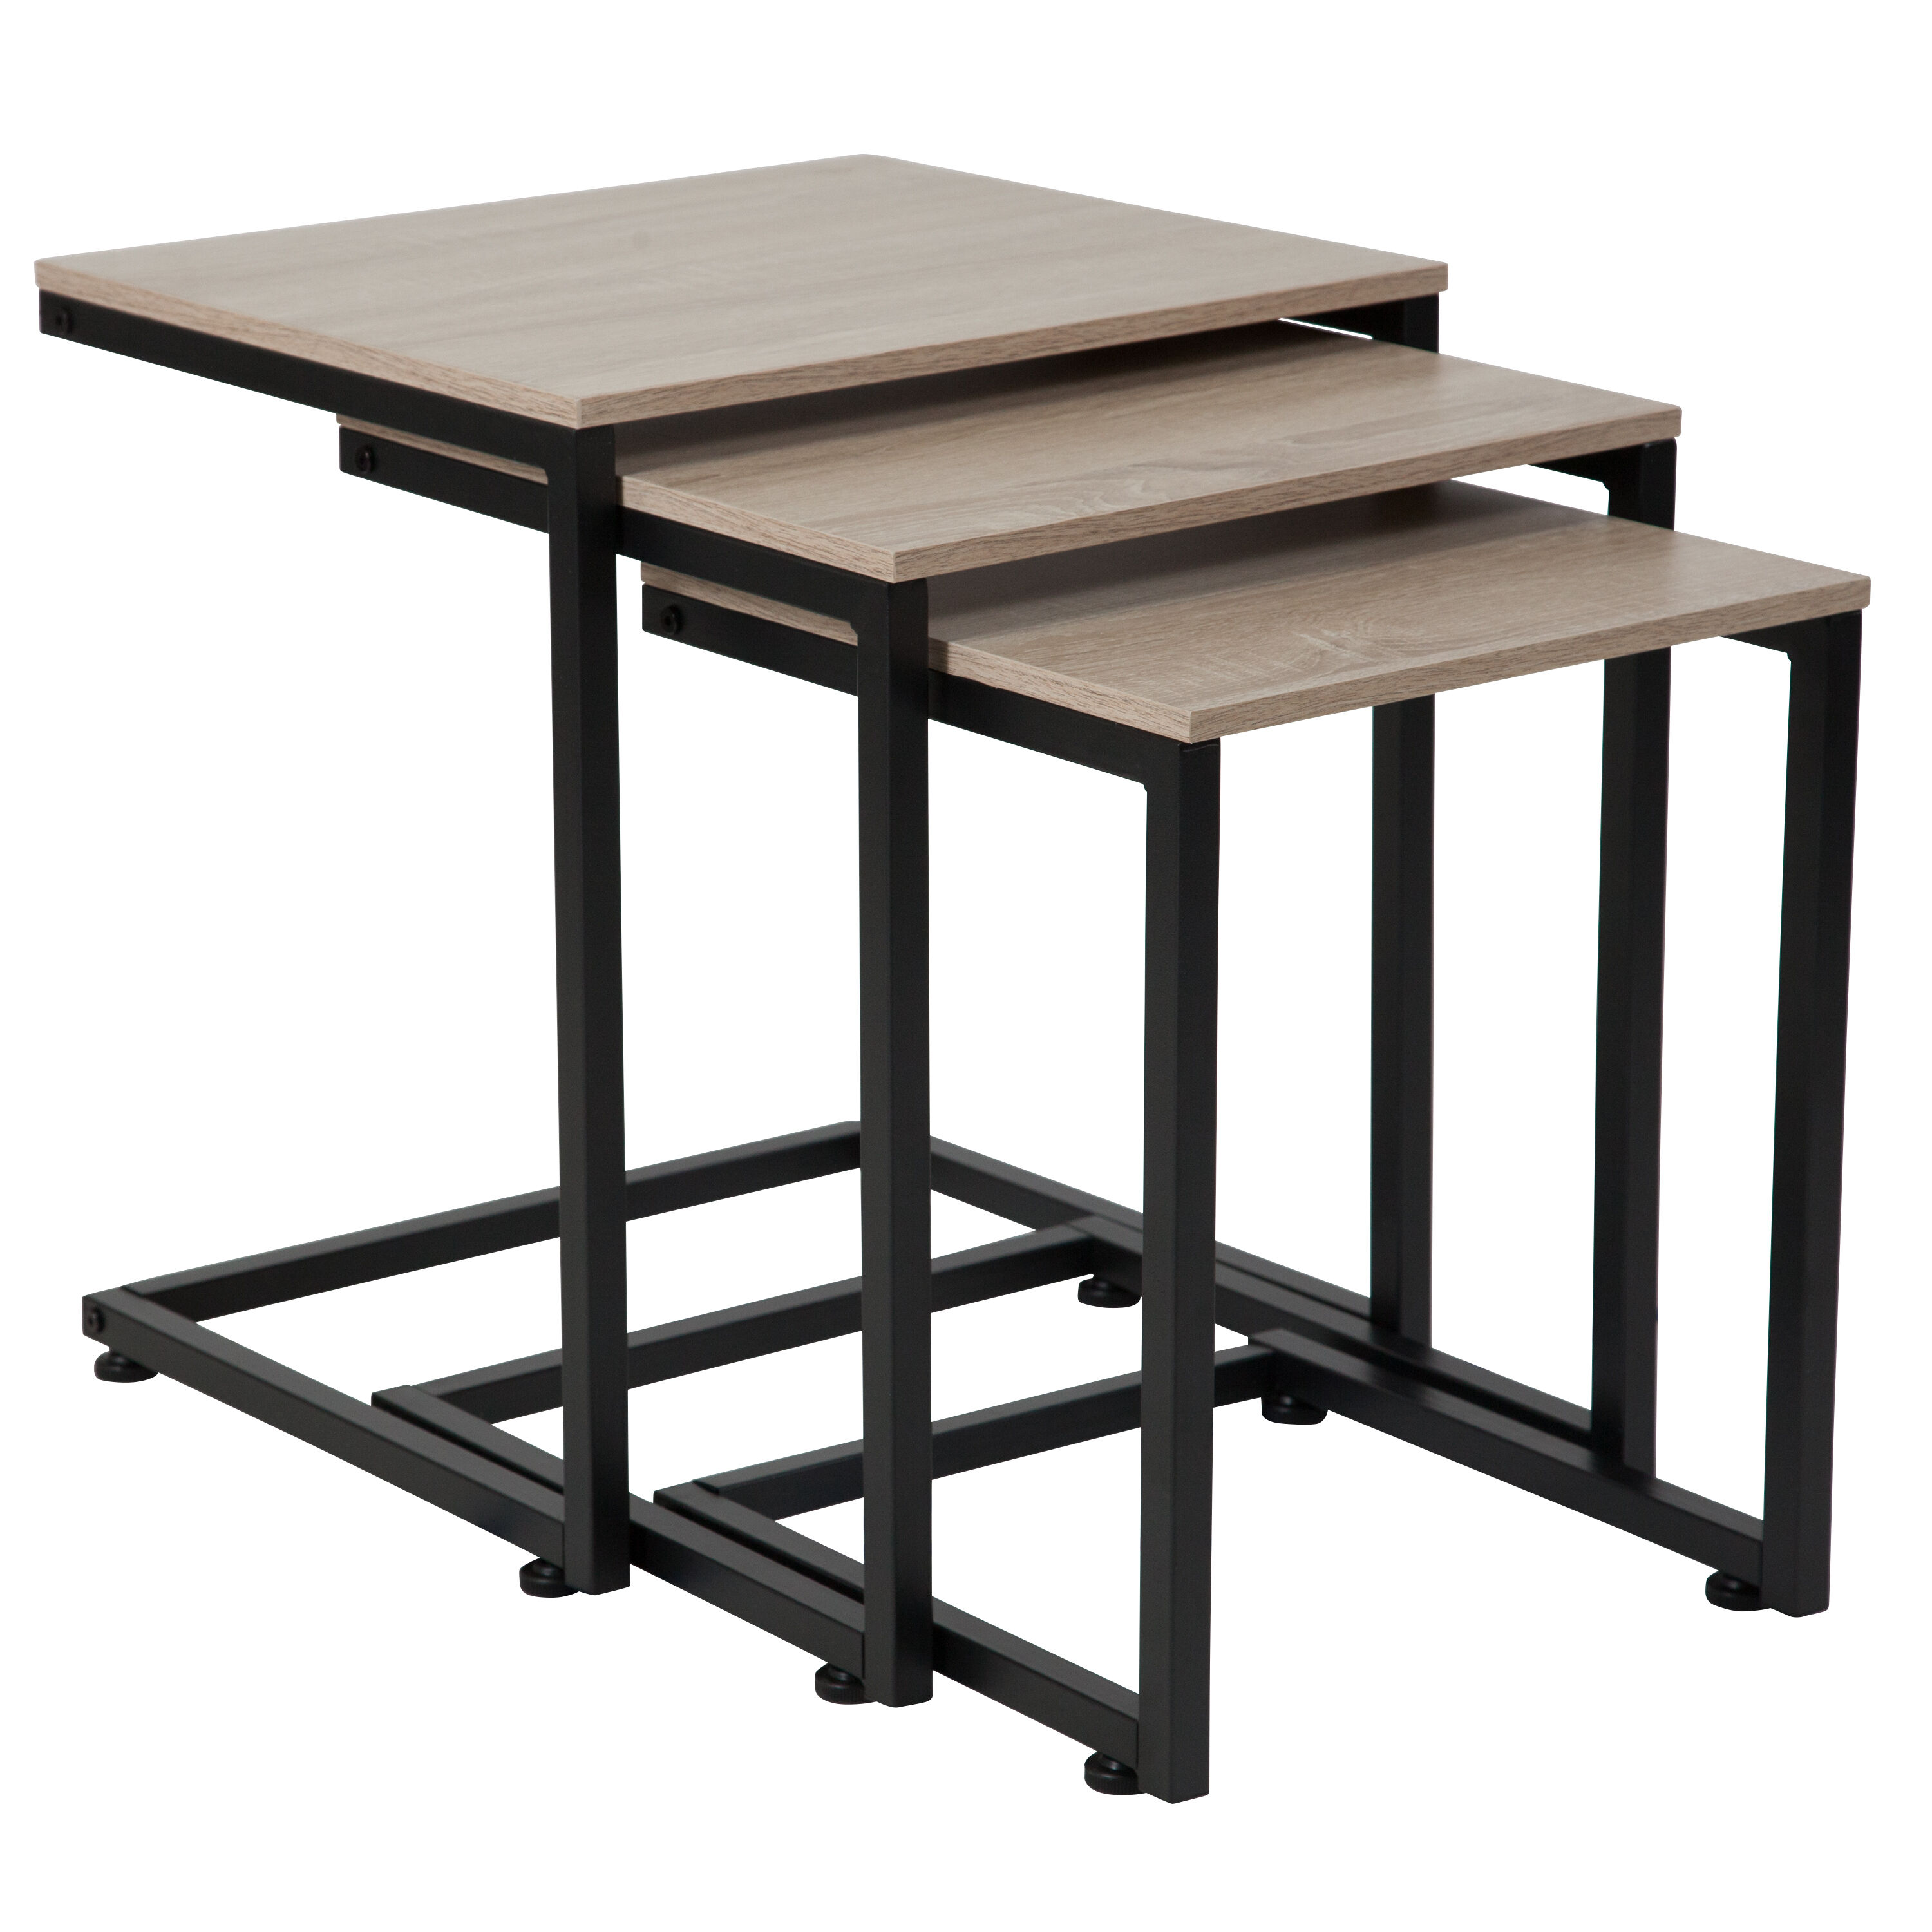 Black Metal Nesting Tables Flash Furniture Midtown Collection Sonoma Oak Wood Grain